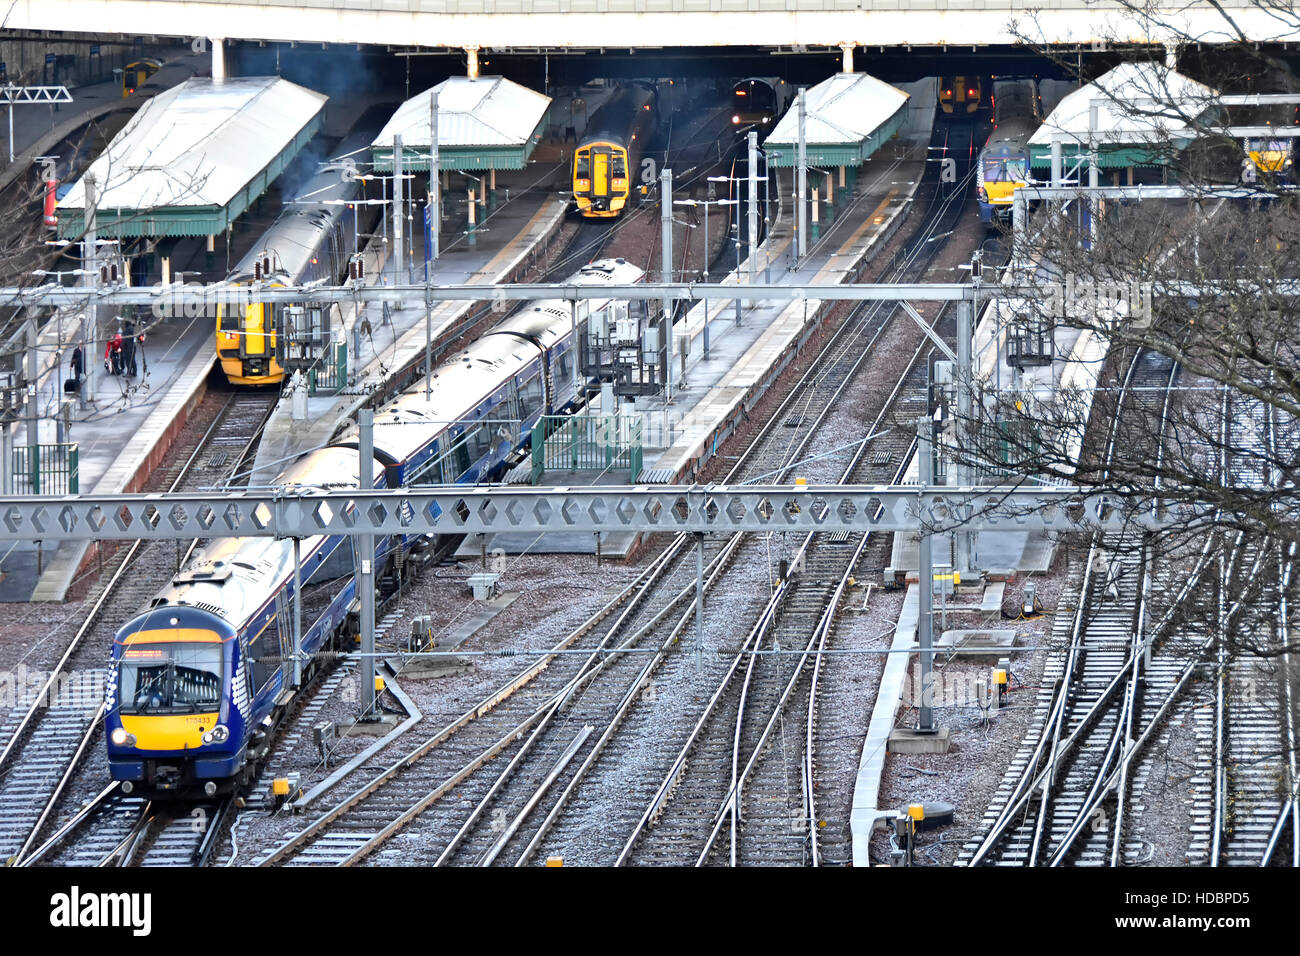 Town Centre Edinburgh Waverley railway station Scotland uk managed by Network Rai) platforms tracks trains on a - Stock Image